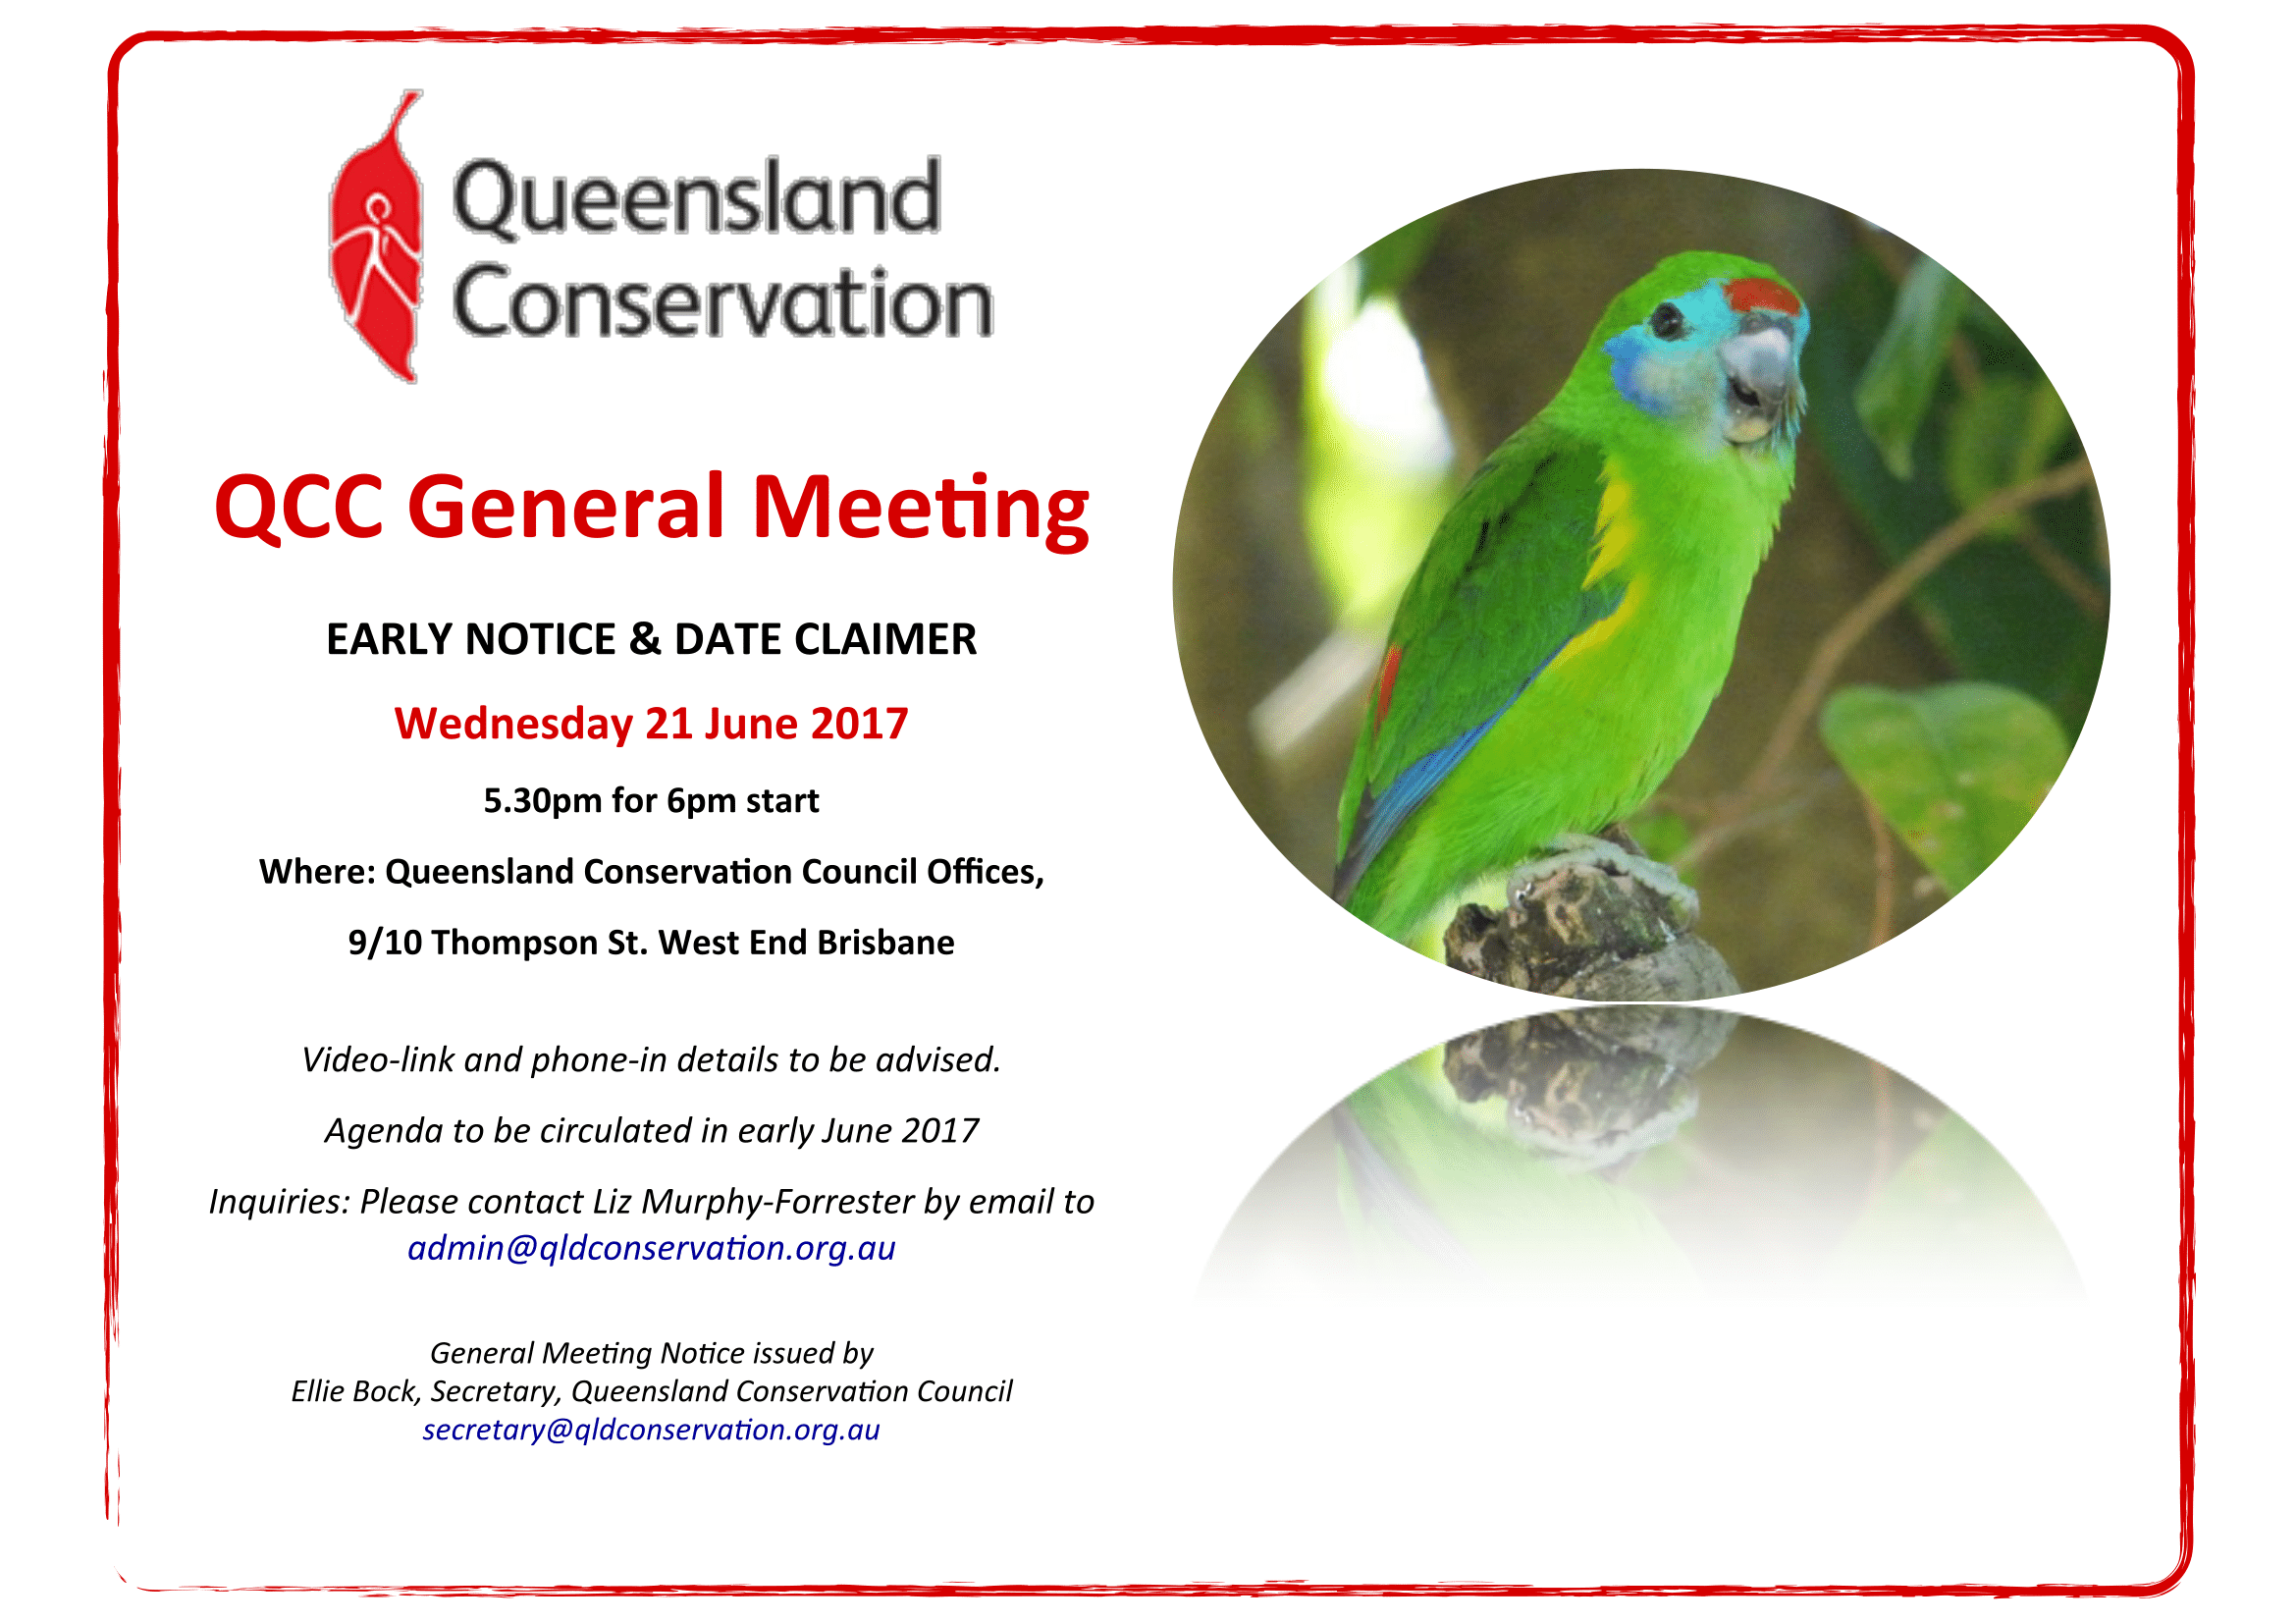 QCC_June_2017_General_Meeting_Notice-1.png